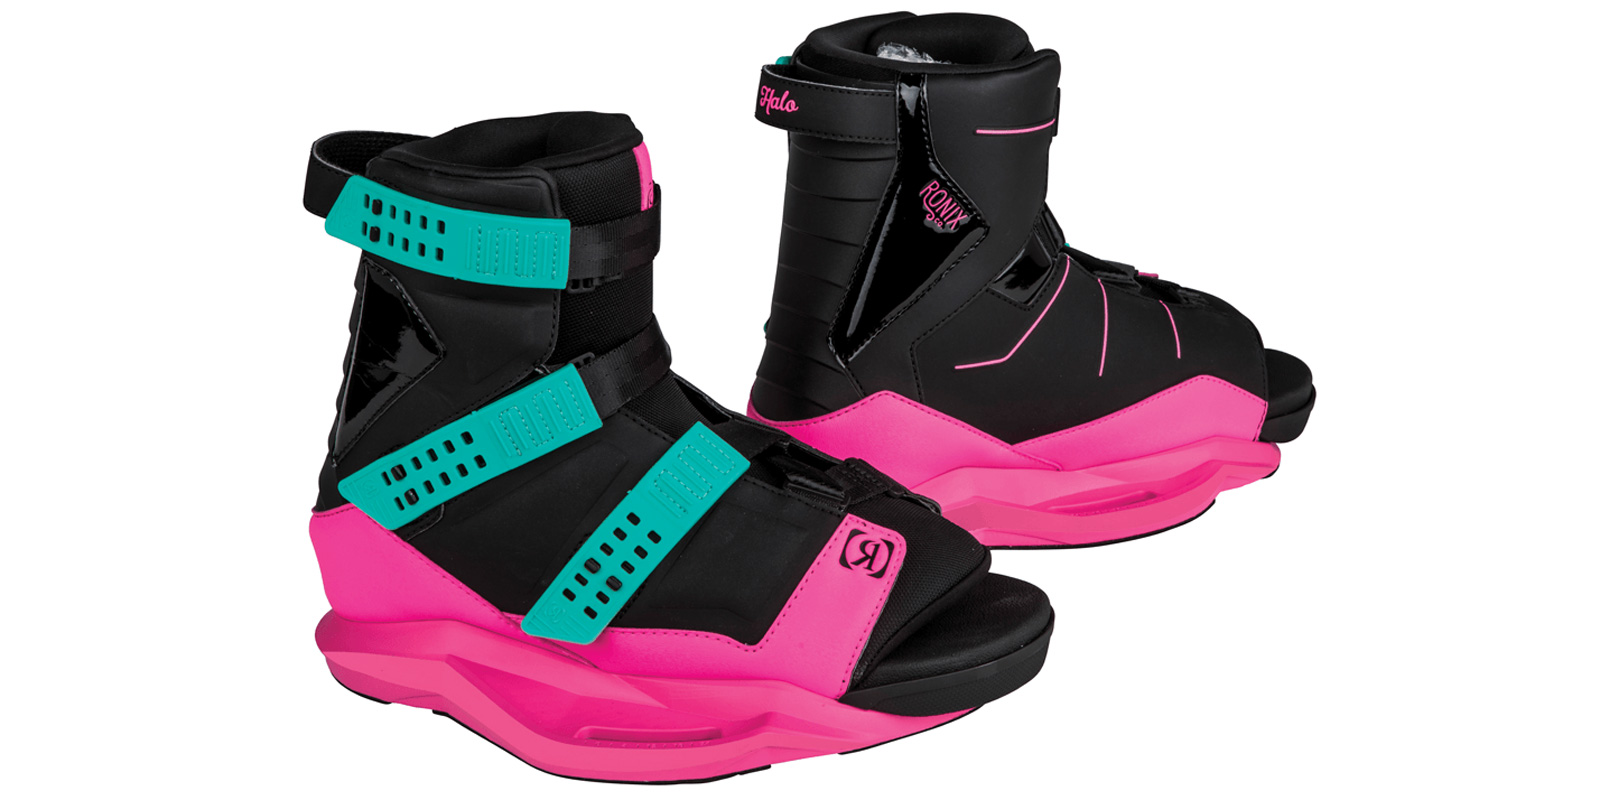 2019-ronix-halo-womens-wakeboard-boot